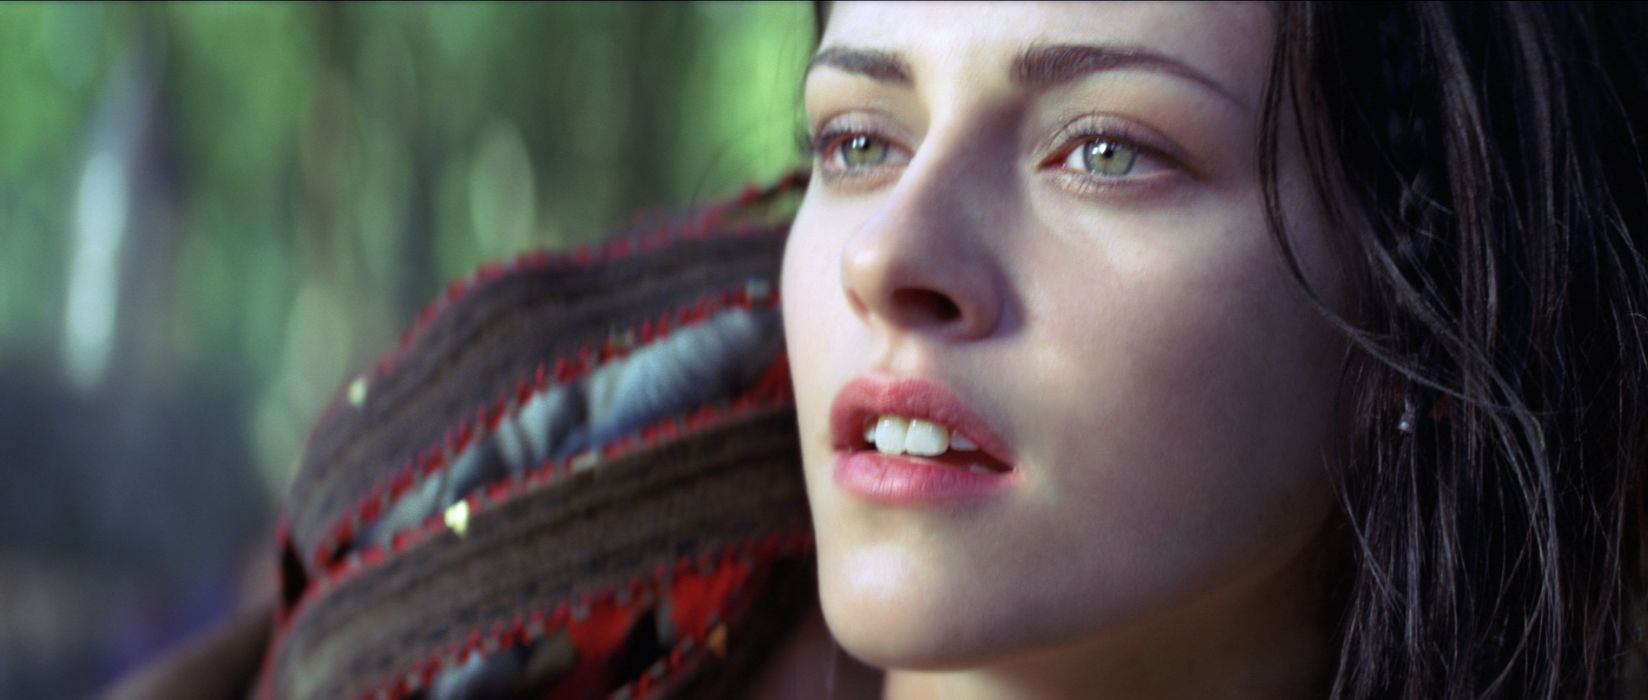 Movie - Snow White And The Huntsman wallpaper